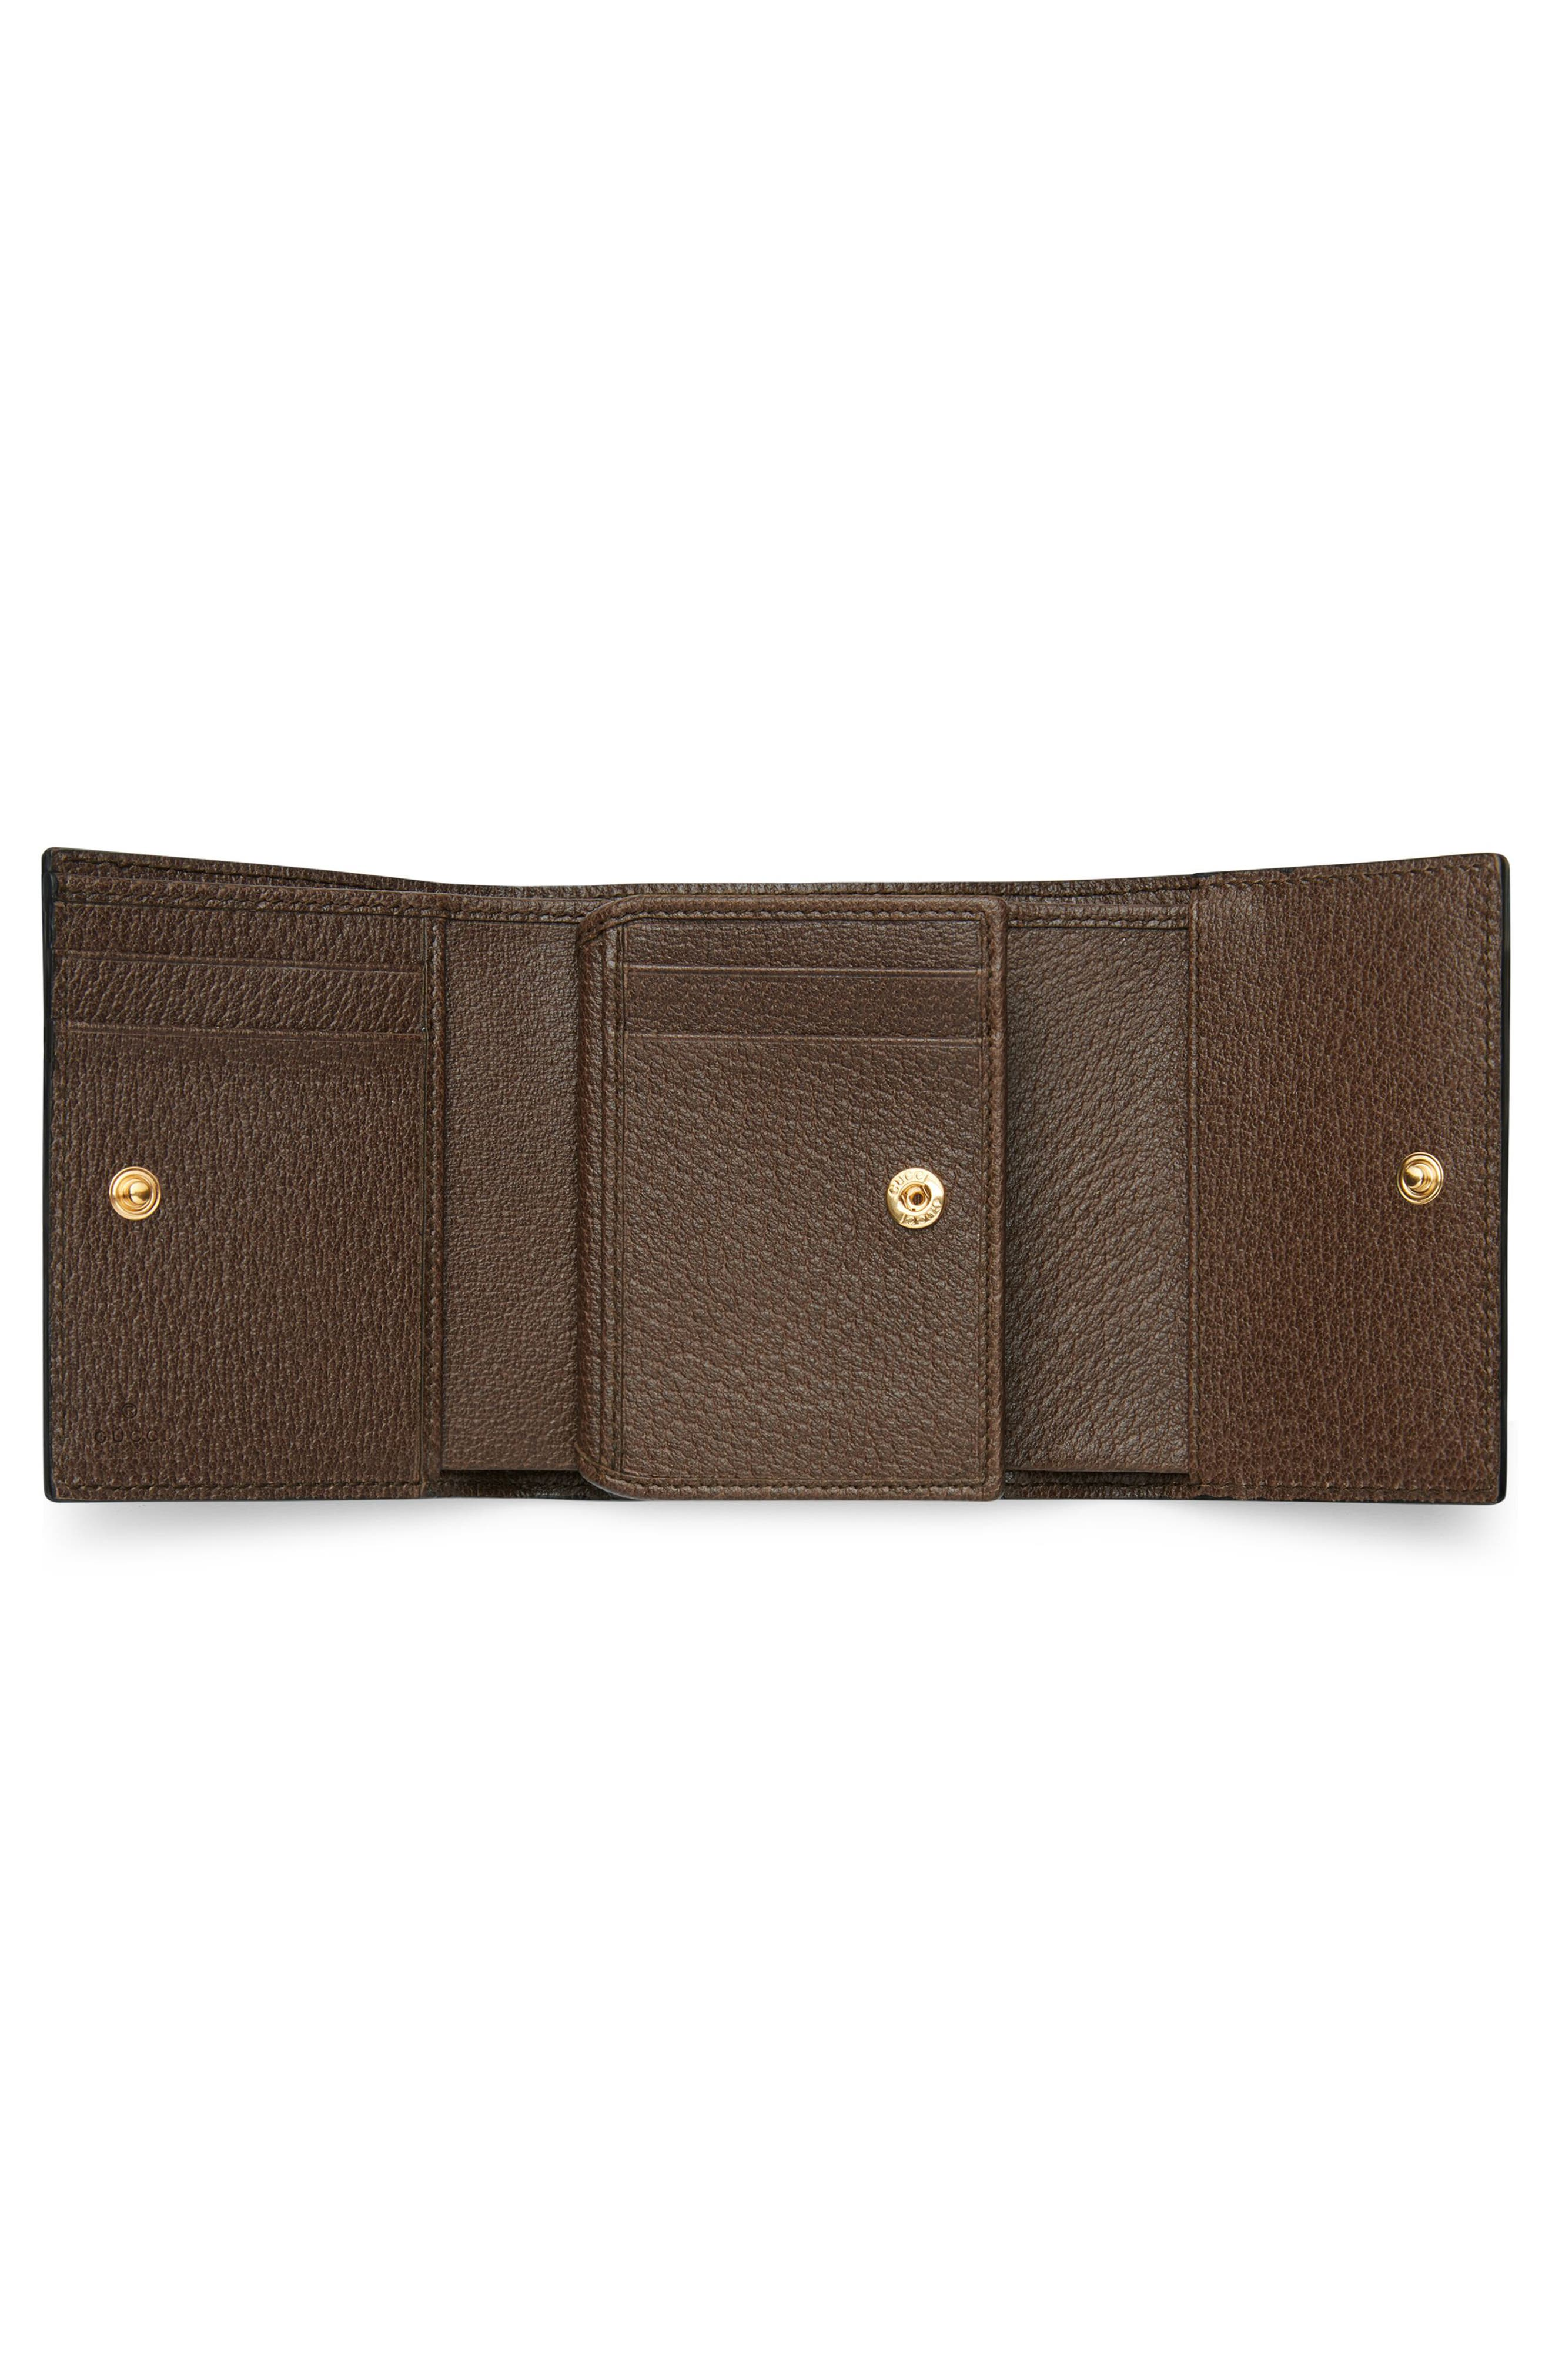 Ophidia GG Supreme French Wallet,                             Alternate thumbnail 2, color,                             Beige Ebony/ Acero/ Vert Red